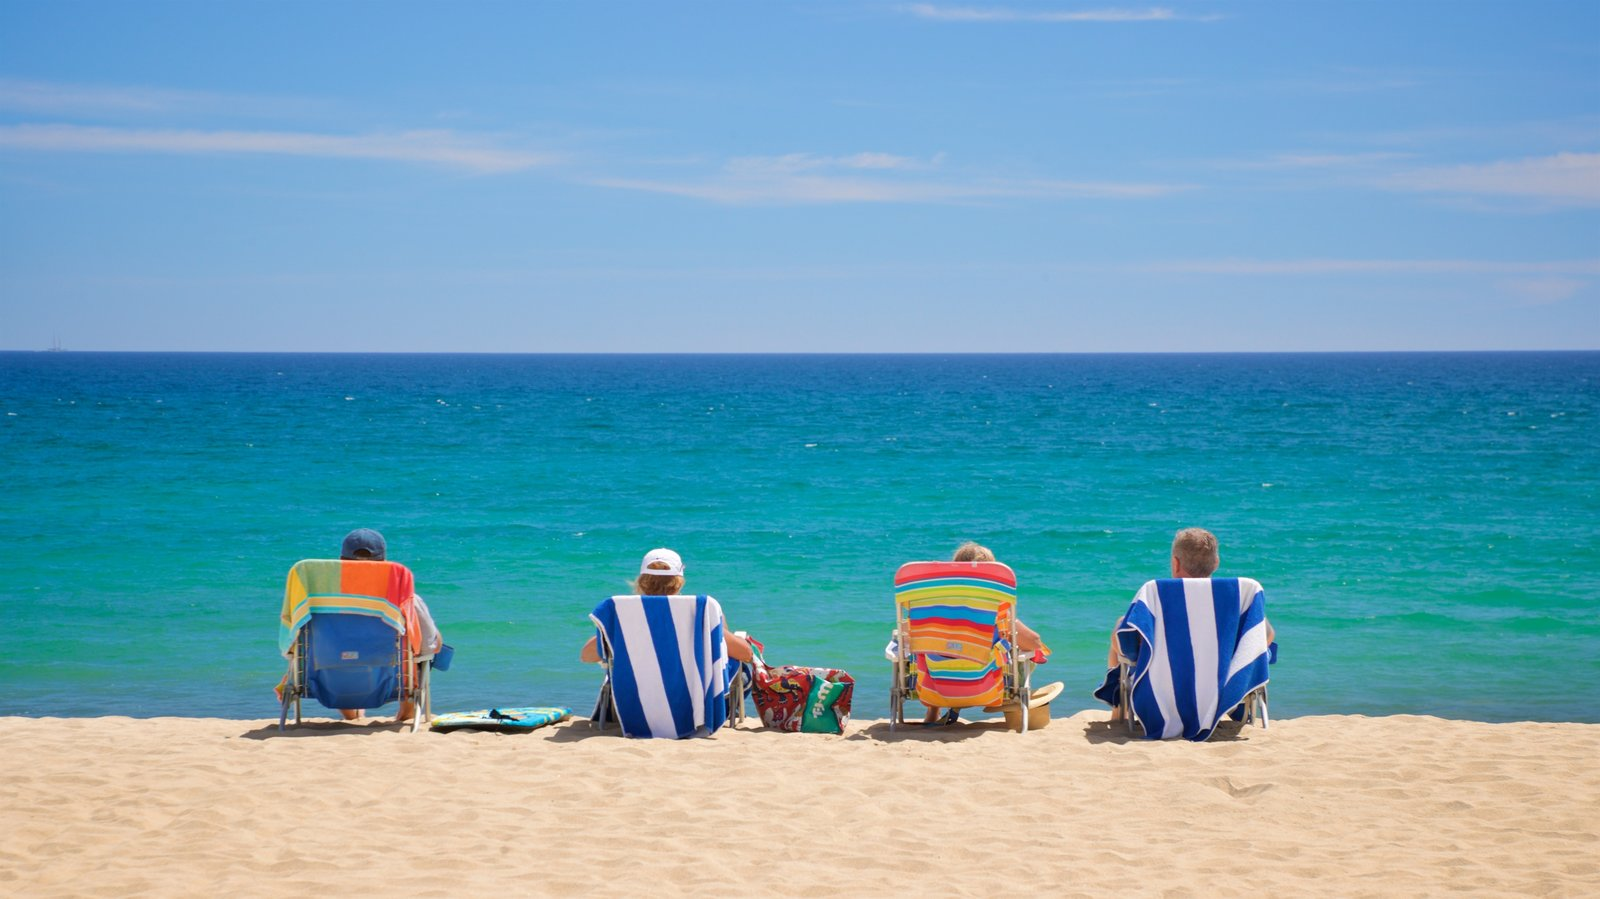 Costa Azul Beach which includes general coastal views and a sandy beach as well as a small group of people